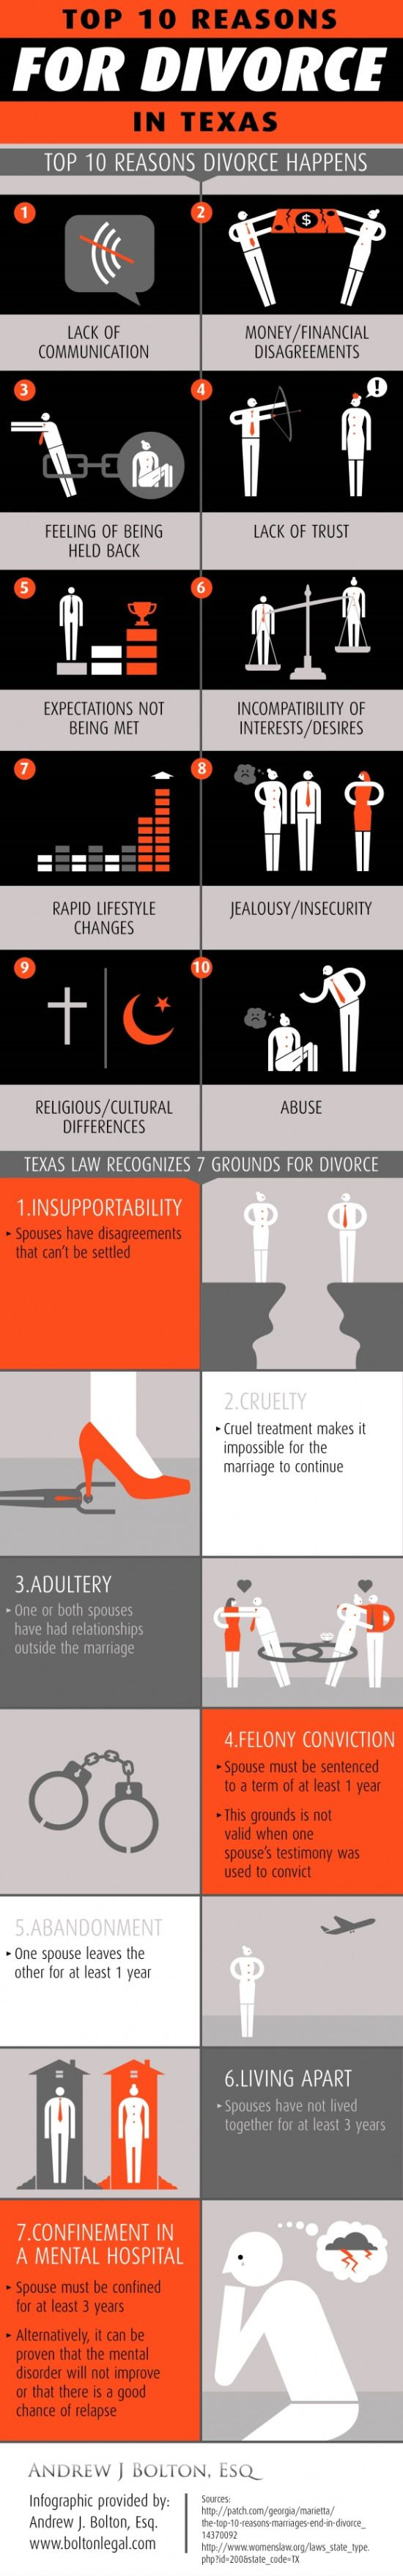 Did You Know That Texas Law Recognizes 7 Grounds For Divorce Take A Look At This Infographic From A Divorce Reasons For Divorce Texas Law Grounds For Divorce